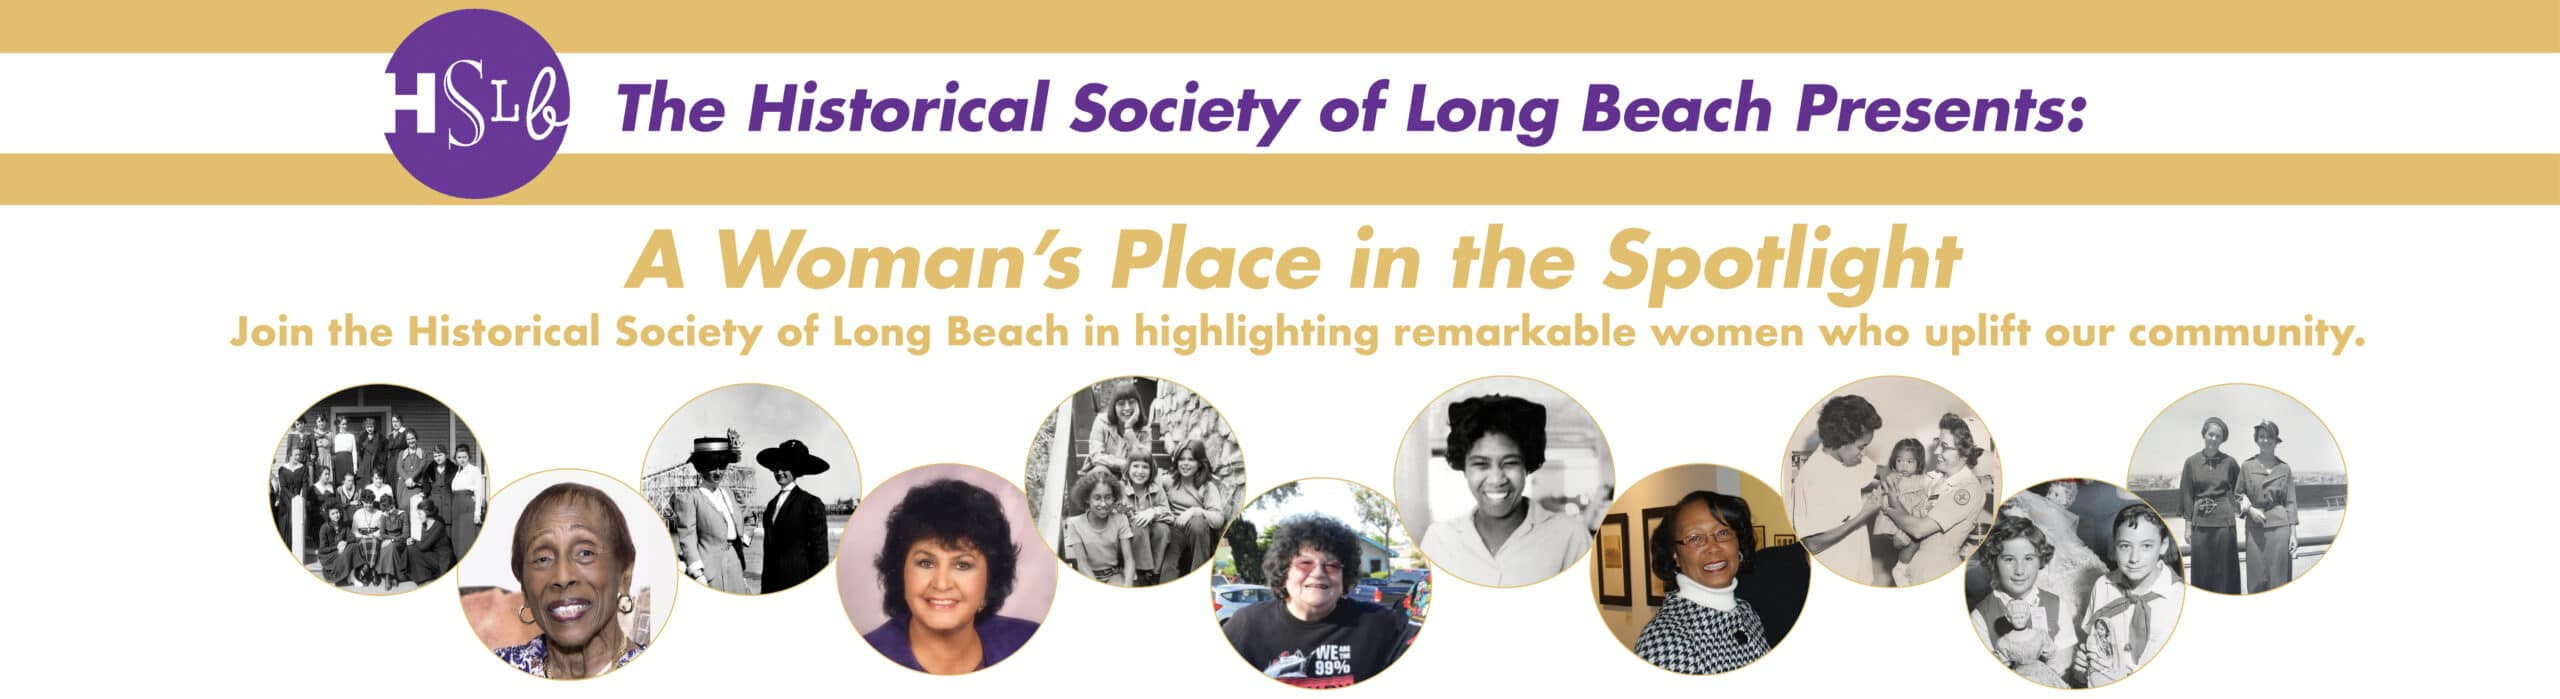 HSLB the historical society of long beach presents a woman's place in the spotlight